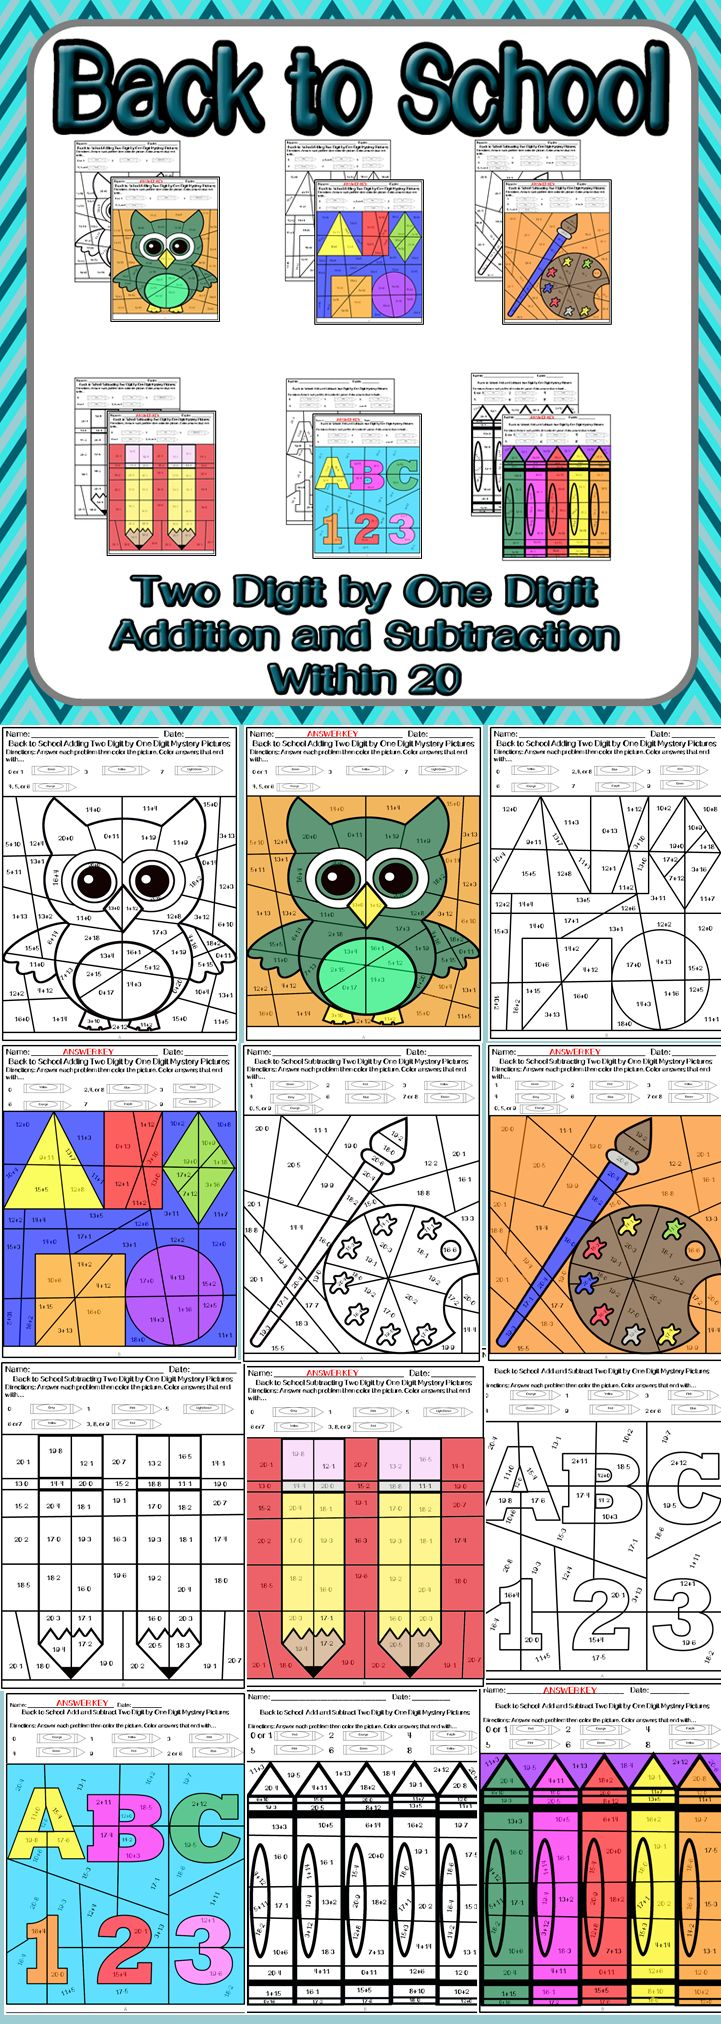 Practice adding and subtracting two digit by one digit numbers with these 6 mystery picture activities. Just in time for the start of school, these worksheets provide students a fun way to review adding and subtracting. Students will solve the equations and then color the picture based on the answers. This packet contains: -2 adding two digit by one digit mystery picture worksheets -2 subtracting two digit by one digit mystery picture worksheets -2 adding and subtracting two digit by one…